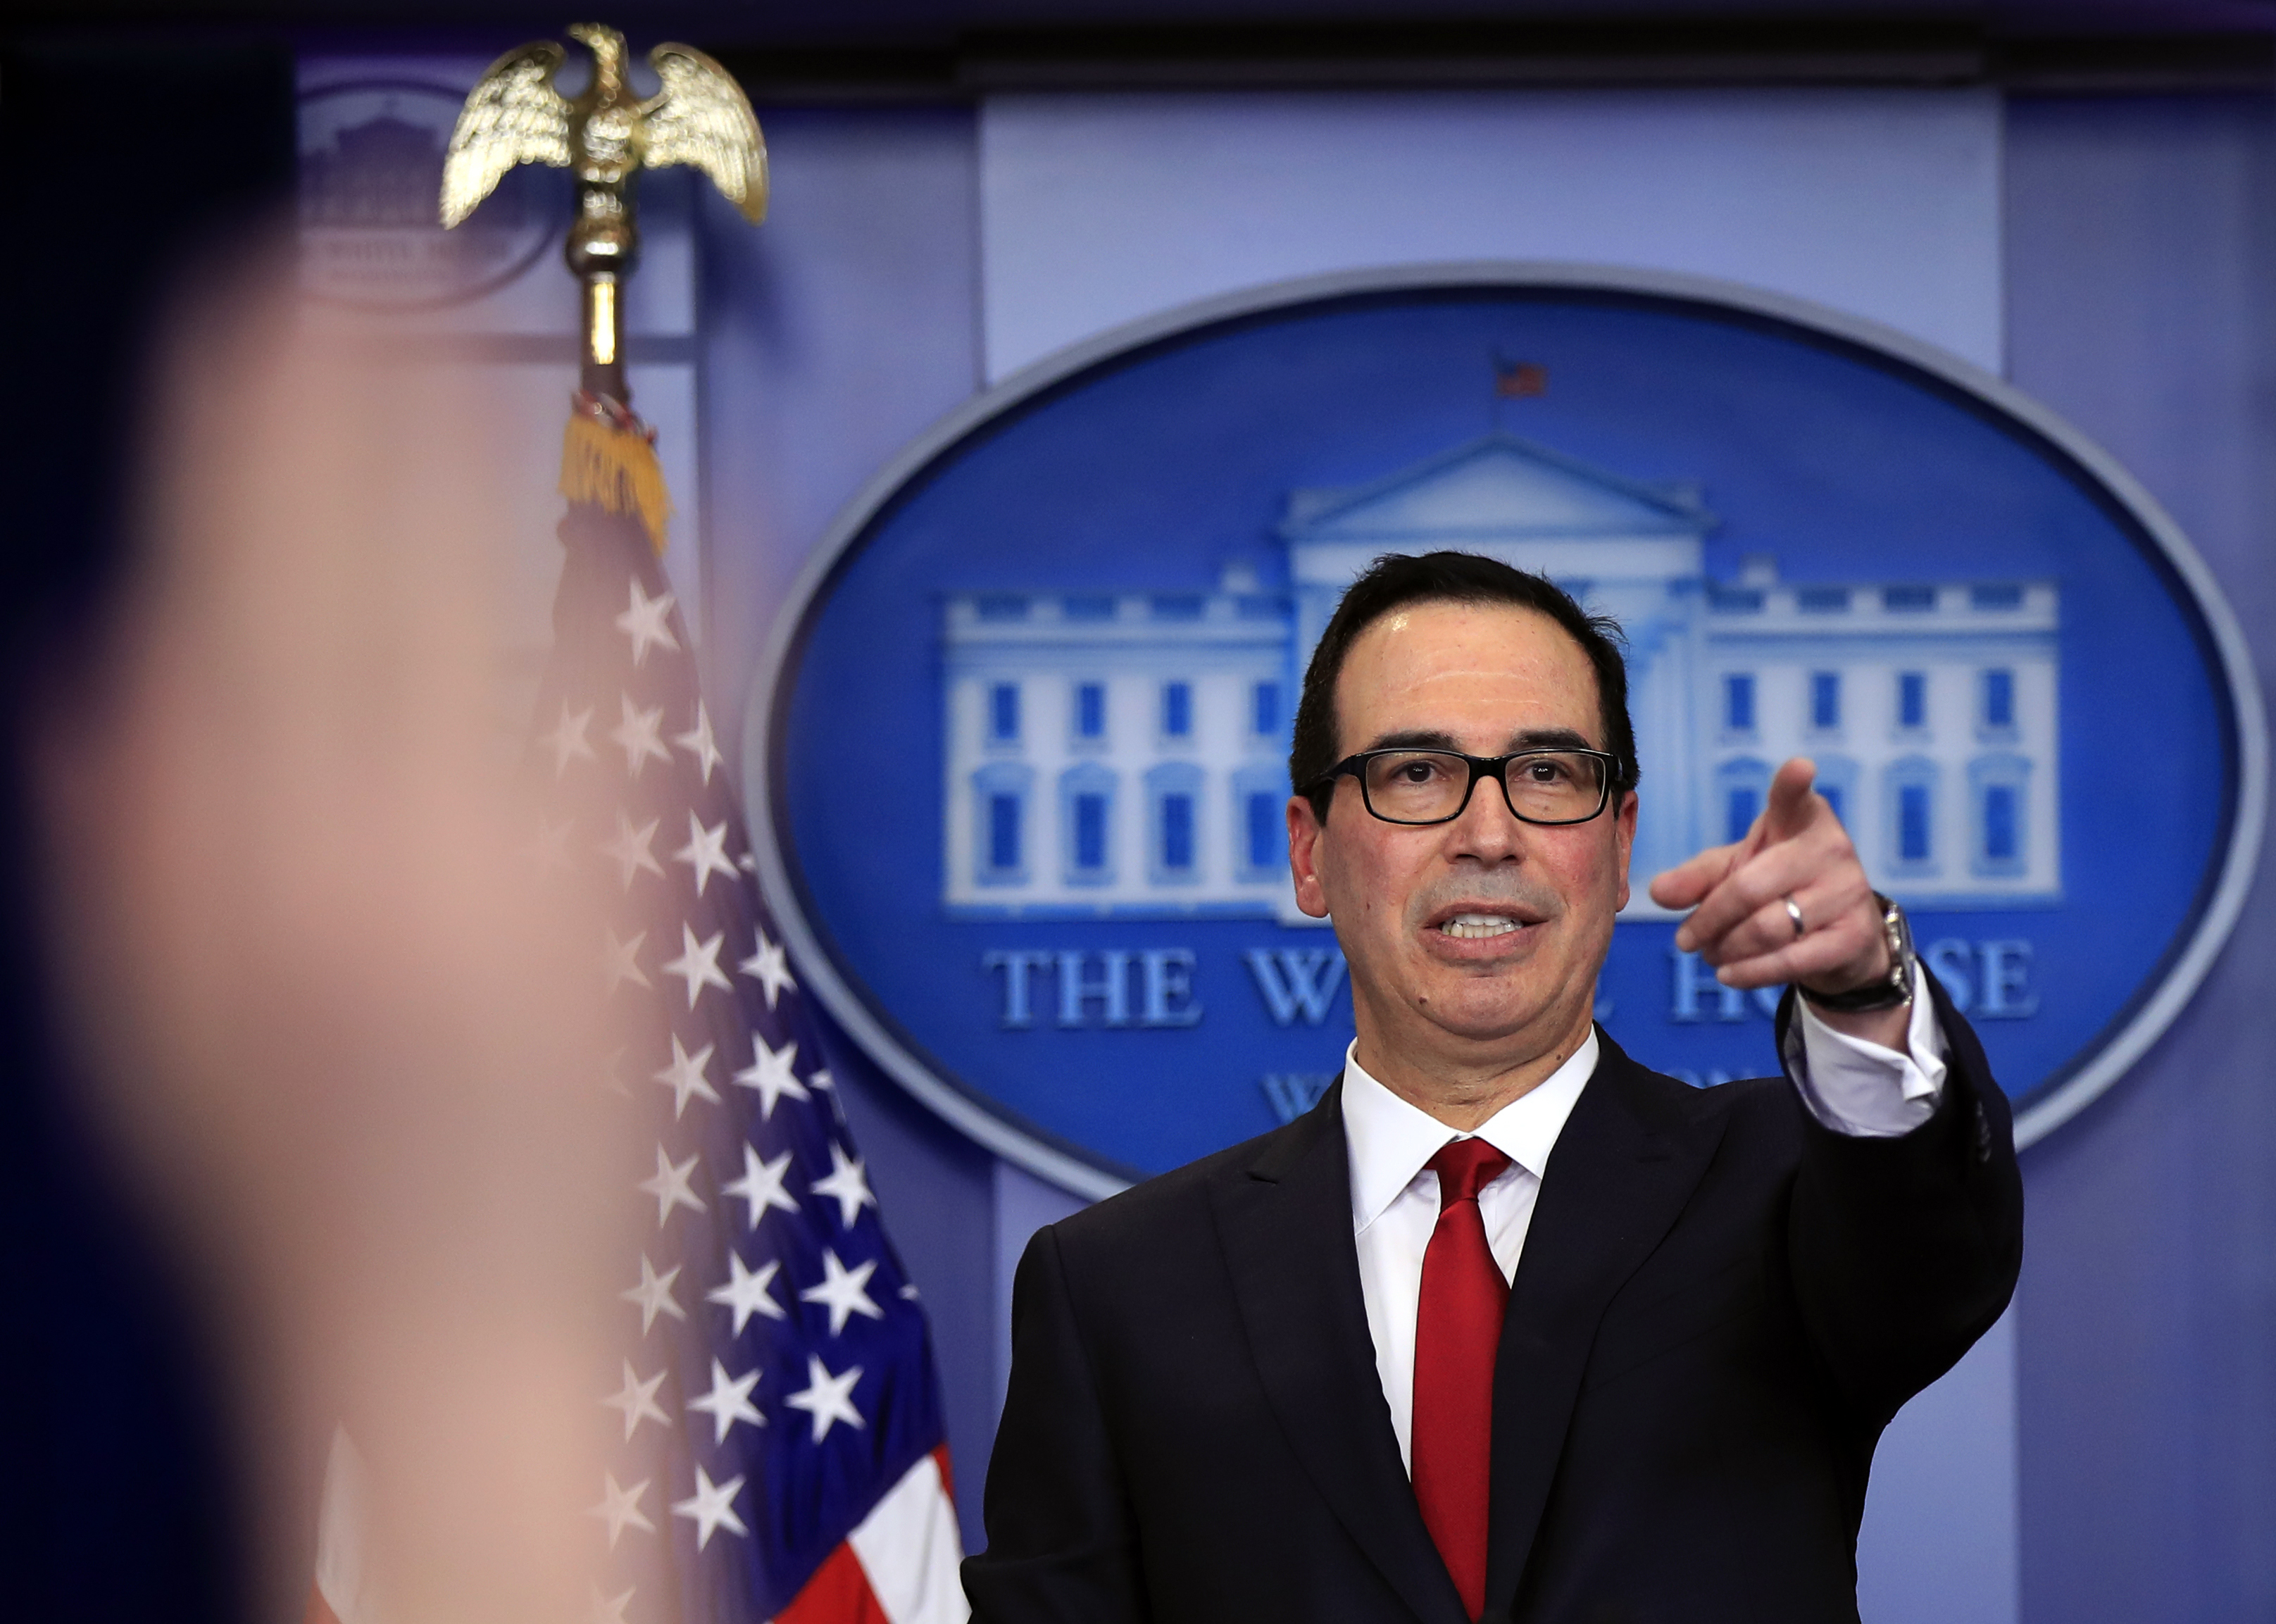 Treasury Secretary Steven Mnuchin, gestures during a White House daily press briefing in the Brady press briefing room at the White House, in Washington, Jan. 11, 2018.